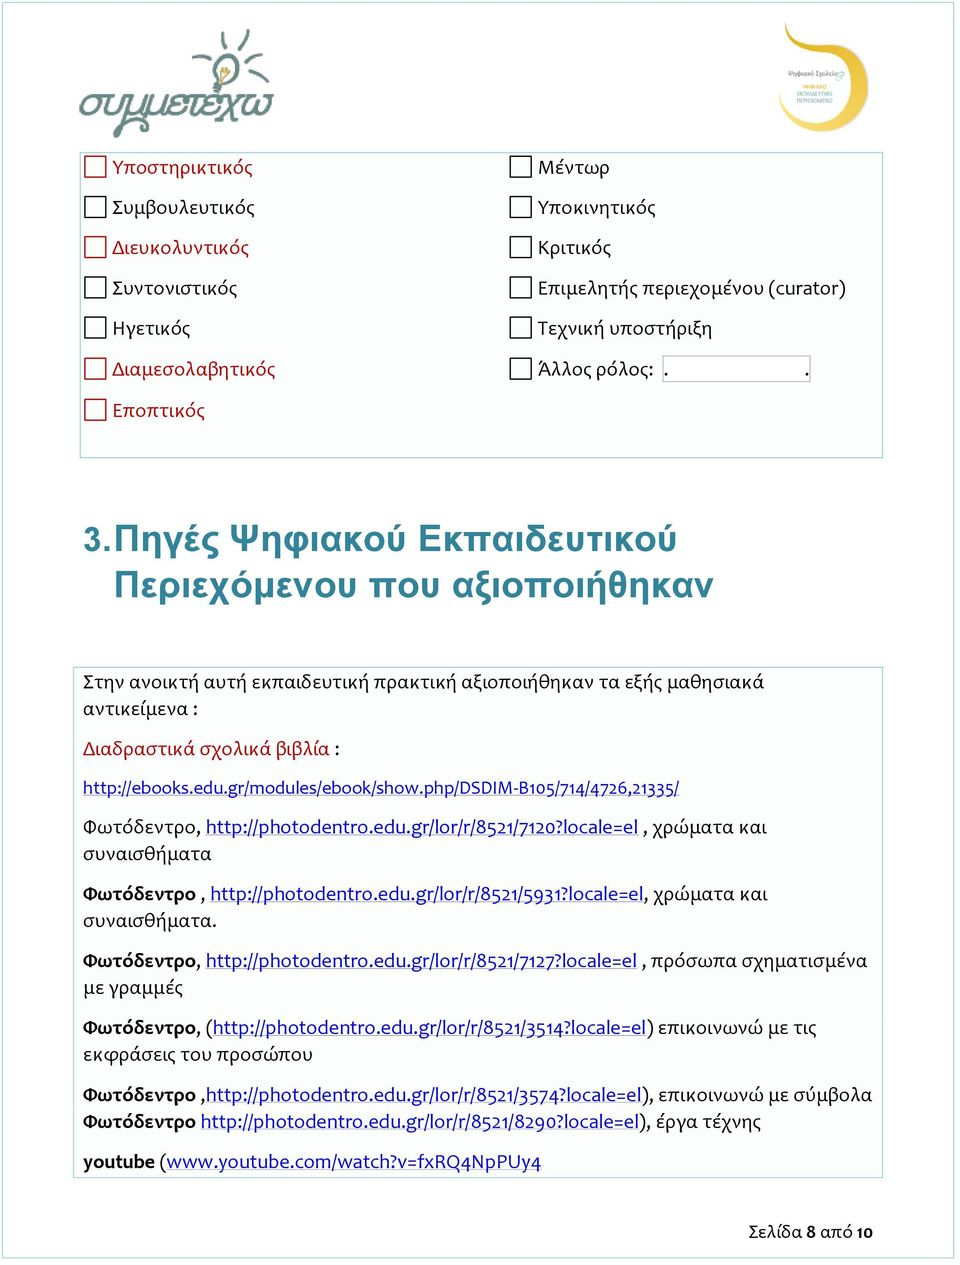 gr/modules/ebook/show.php/dsdim-b105/714/4726,21335/ Φωτόδεντρο, http://photodentro.edu.gr/lor/r/8521/7120?locale=el, χρώματα και συναισθήματα Φωτόδεντρο, http://photodentro.edu.gr/lor/r/8521/5931?